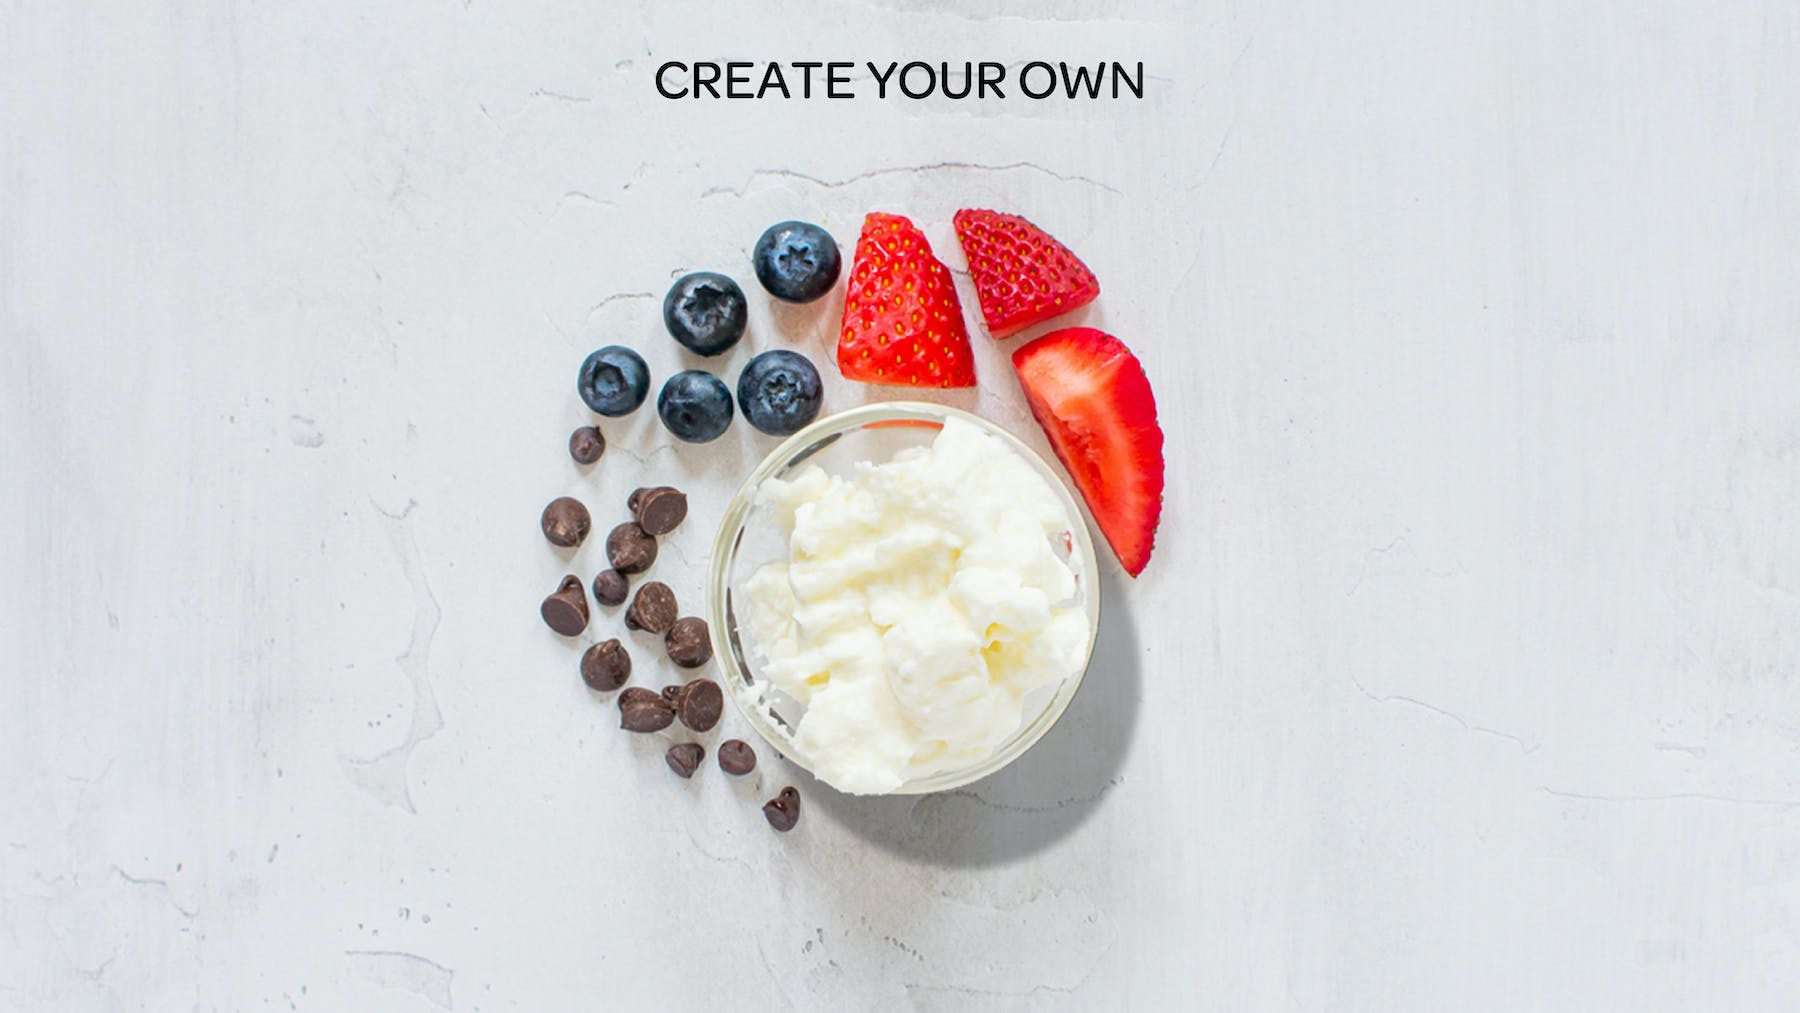 whipped cream, fruit and chocolate chips spread out on a table to represent a create your own honeybar